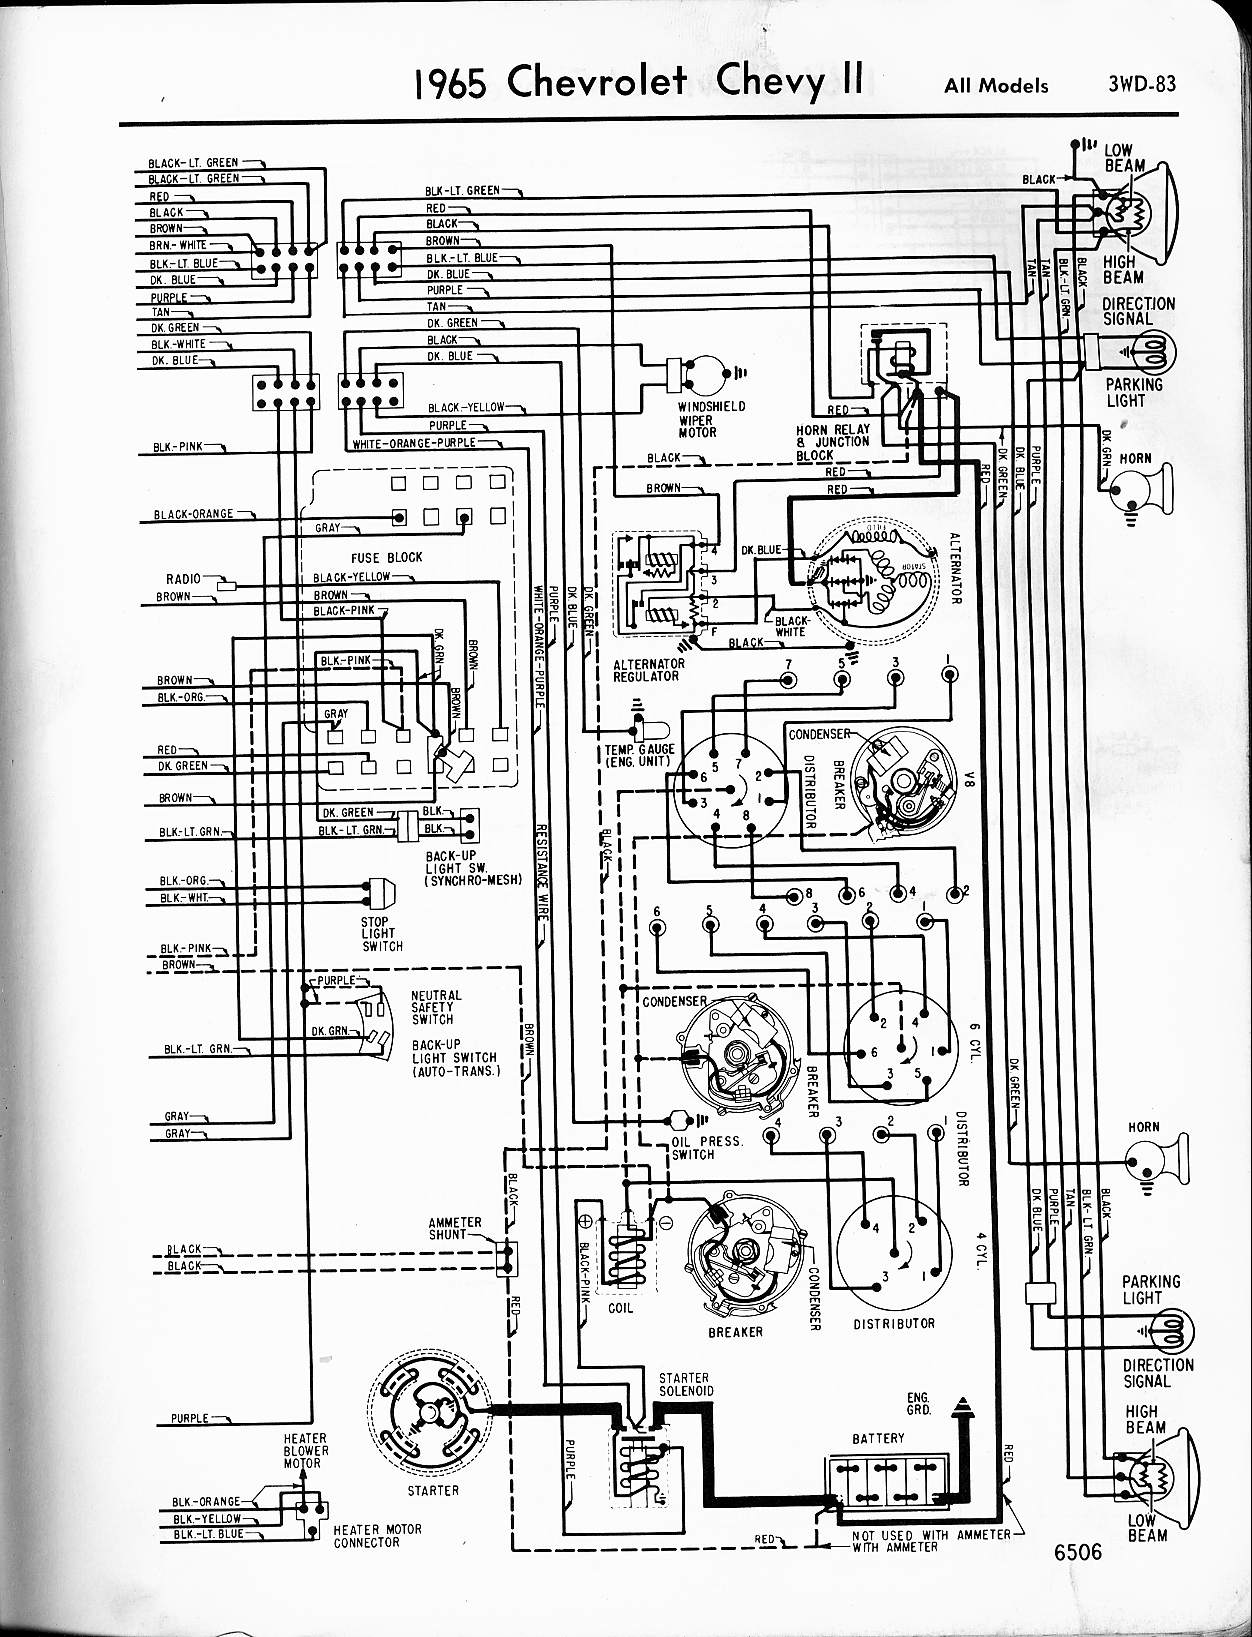 chevy diagrams rh wiring wizard com 1988 GMC Truck Wiring Diagram 1988 GMC Truck Wiring Diagram